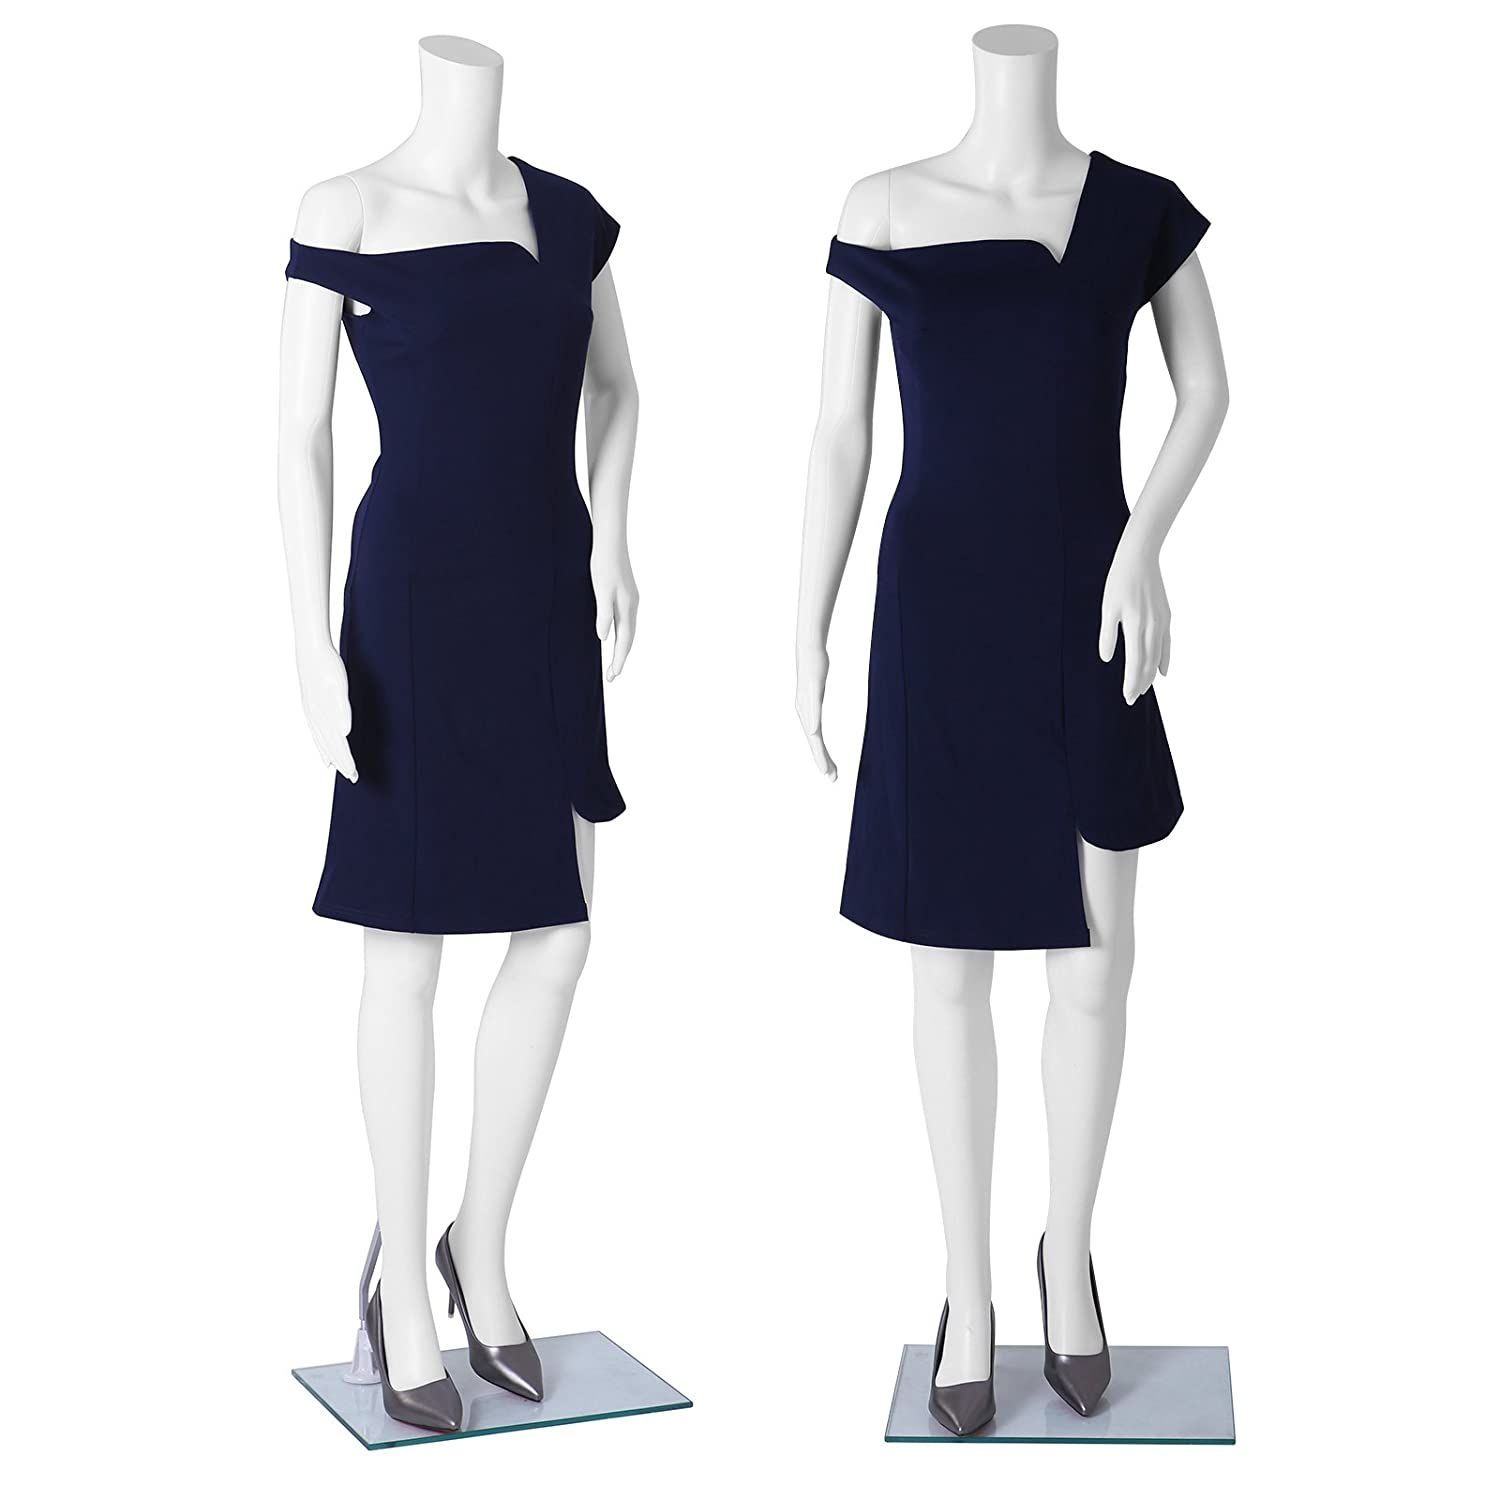 e84958f12 SONGMICS Female Mannequin Full Body without Head Dummy Realistic Adjustable  Manikin for Windowshop Display Dressmaker PE Plastic White MPLM21   Amazon.co.uk  ...